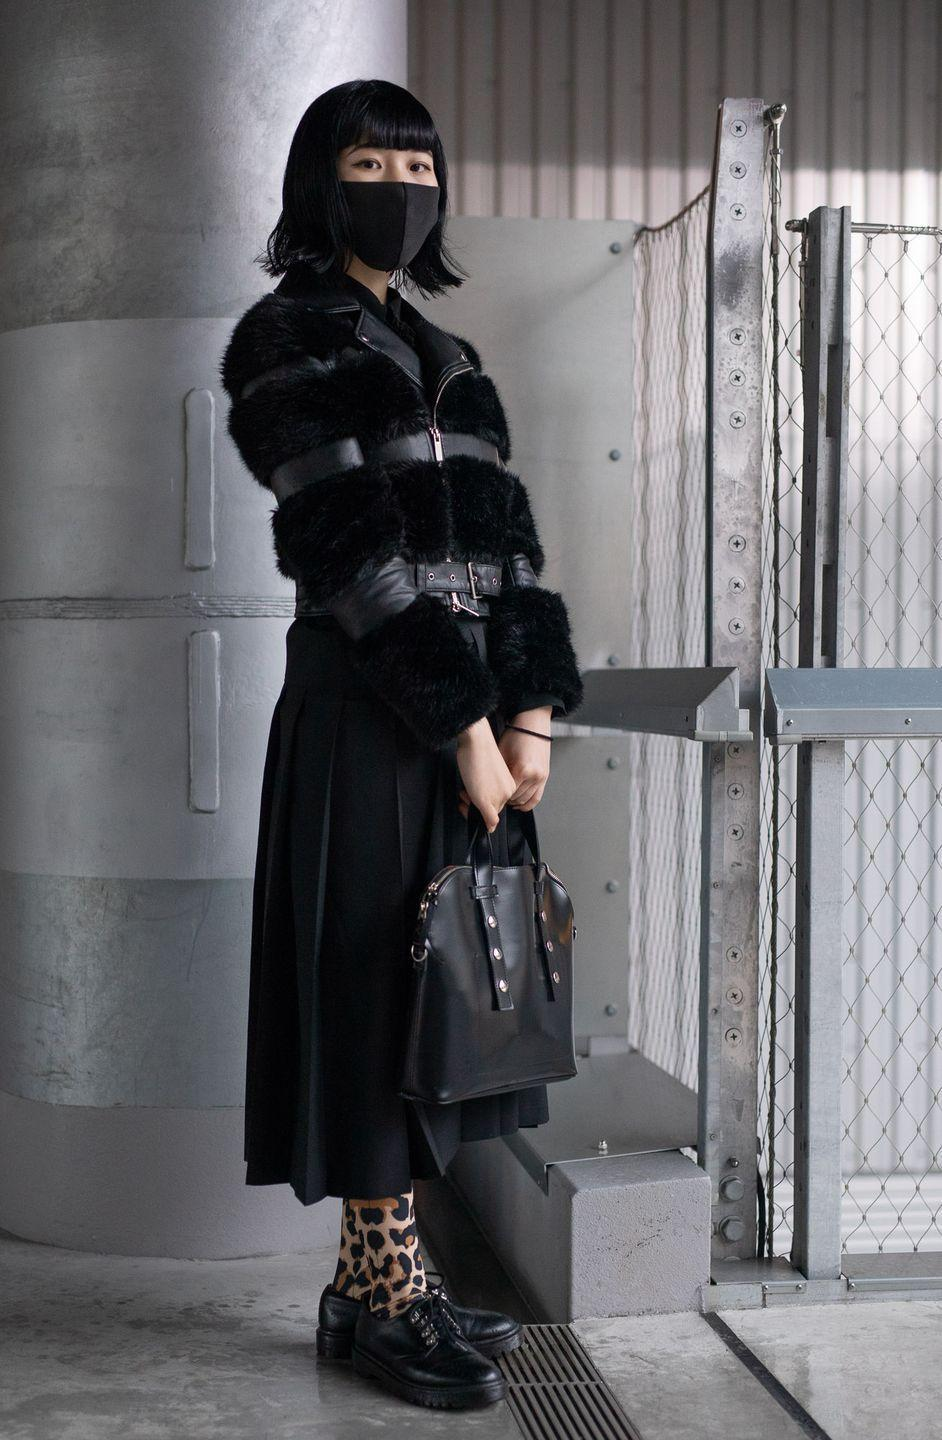 """<p>For an updated take on the shearling jacket, try a style with faux leather accents and moto-inspired details. </p><p><strong>Get the look: Stand Studio</strong> Kristy faux shearling jacket, $369, <a href=""""https://go.skimresources.com?id=74968X1525079&xs=1&url=https%3A%2F%2Fwww.mytheresa.com%2Fen-us%2Fstand-studio-kristy-faux-shearling-jacket-1646900.html%3Fgclid%3DCj0KCQjwreT8BRDTARIsAJLI0KIvN1lz6zKAhks83q9Qw6lSEMbmK75Gw3dg6utra6fT3Bm3zg5M5A8aAqPCEALw_wcB%26utm_source%3Dsea_pla%26utm_medium%3Dgoogle%26utm_campaign%3Dgoogle_sea%26ef_id%3DCj0KCQjwreT8BRDTARIsAJLI0KIvN1lz6zKAhks83q9Qw6lSEMbmK75Gw3dg6utra6fT3Bm3zg5M5A8aAqPCEALw_wcB%3AG%3As%3Fpr%3Dlptest1"""" rel=""""nofollow noopener"""" target=""""_blank"""" data-ylk=""""slk:mytheresa.com"""" class=""""link rapid-noclick-resp"""">mytheresa.com</a>.</p>"""